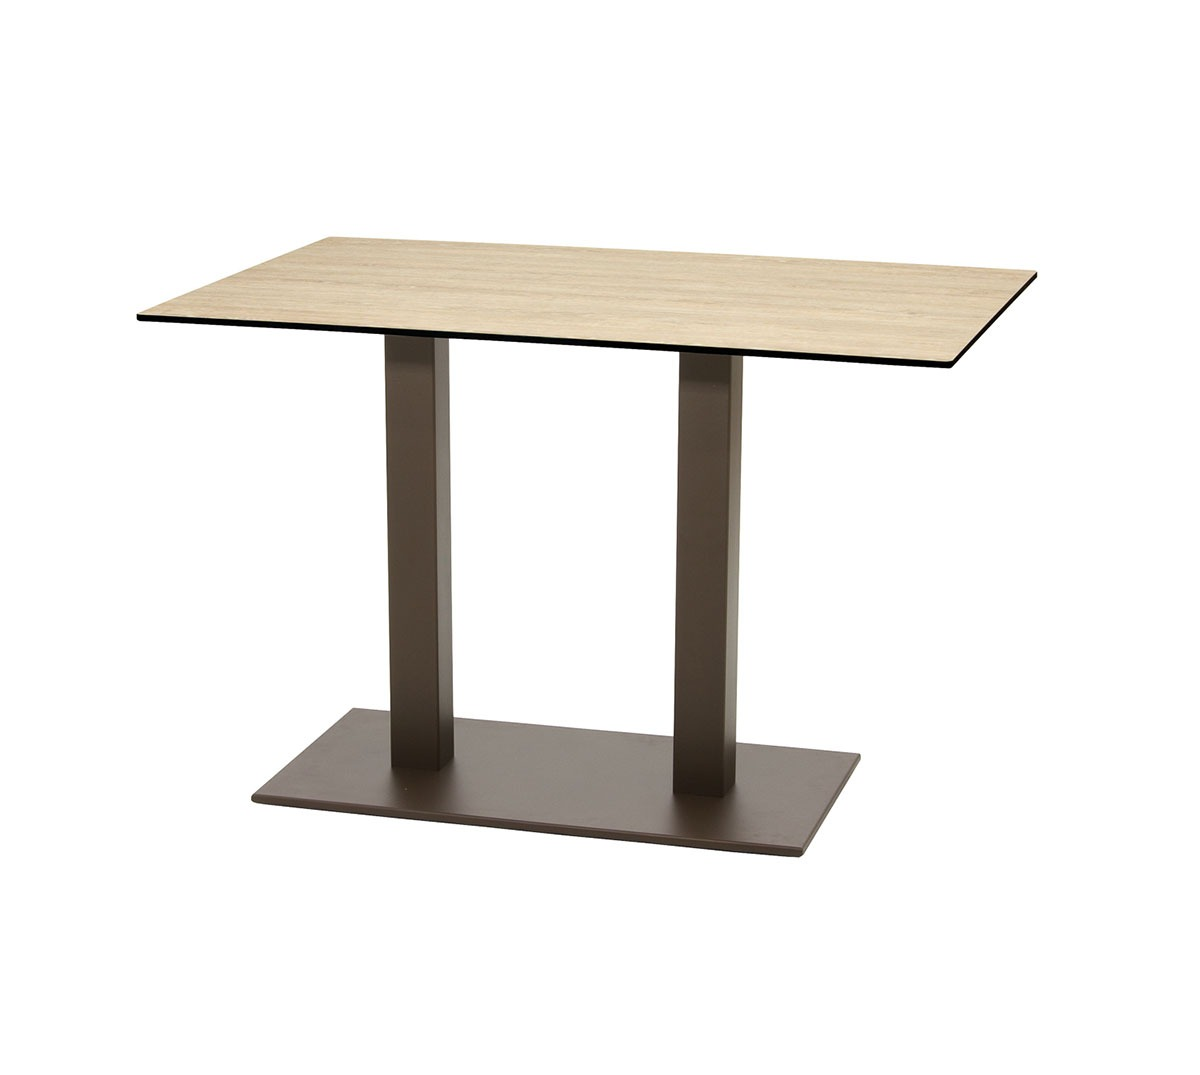 Mesa Sidney a 75 rectangular aluminio color óxido marrón tablero compacto roble rural